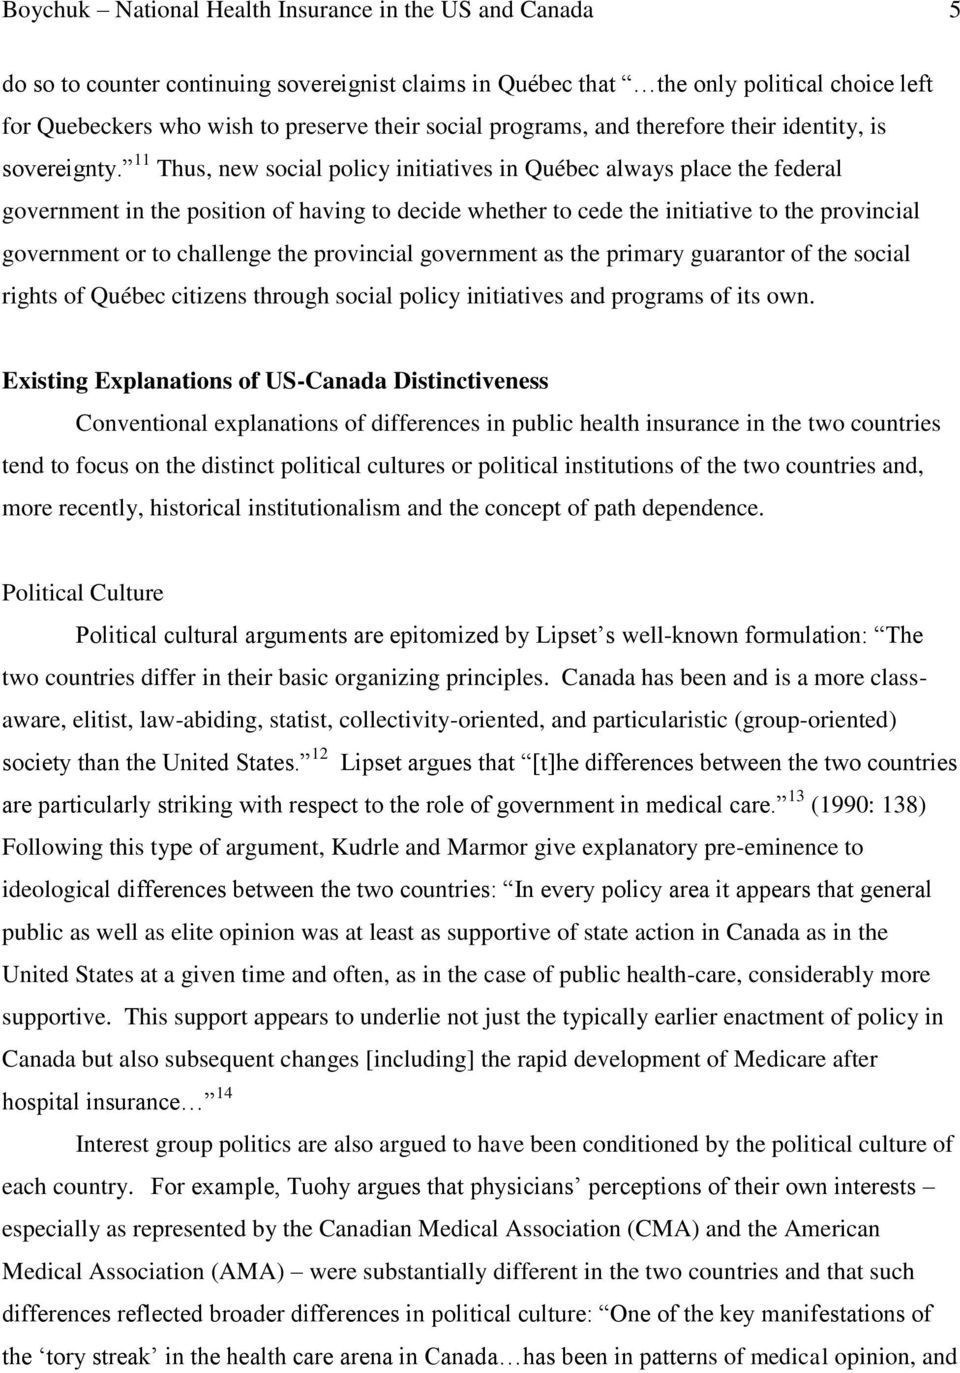 11 Thus, new social policy initiatives in Québec always place the federal government in the position of having to decide whether to cede the initiative to the provincial government or to challenge